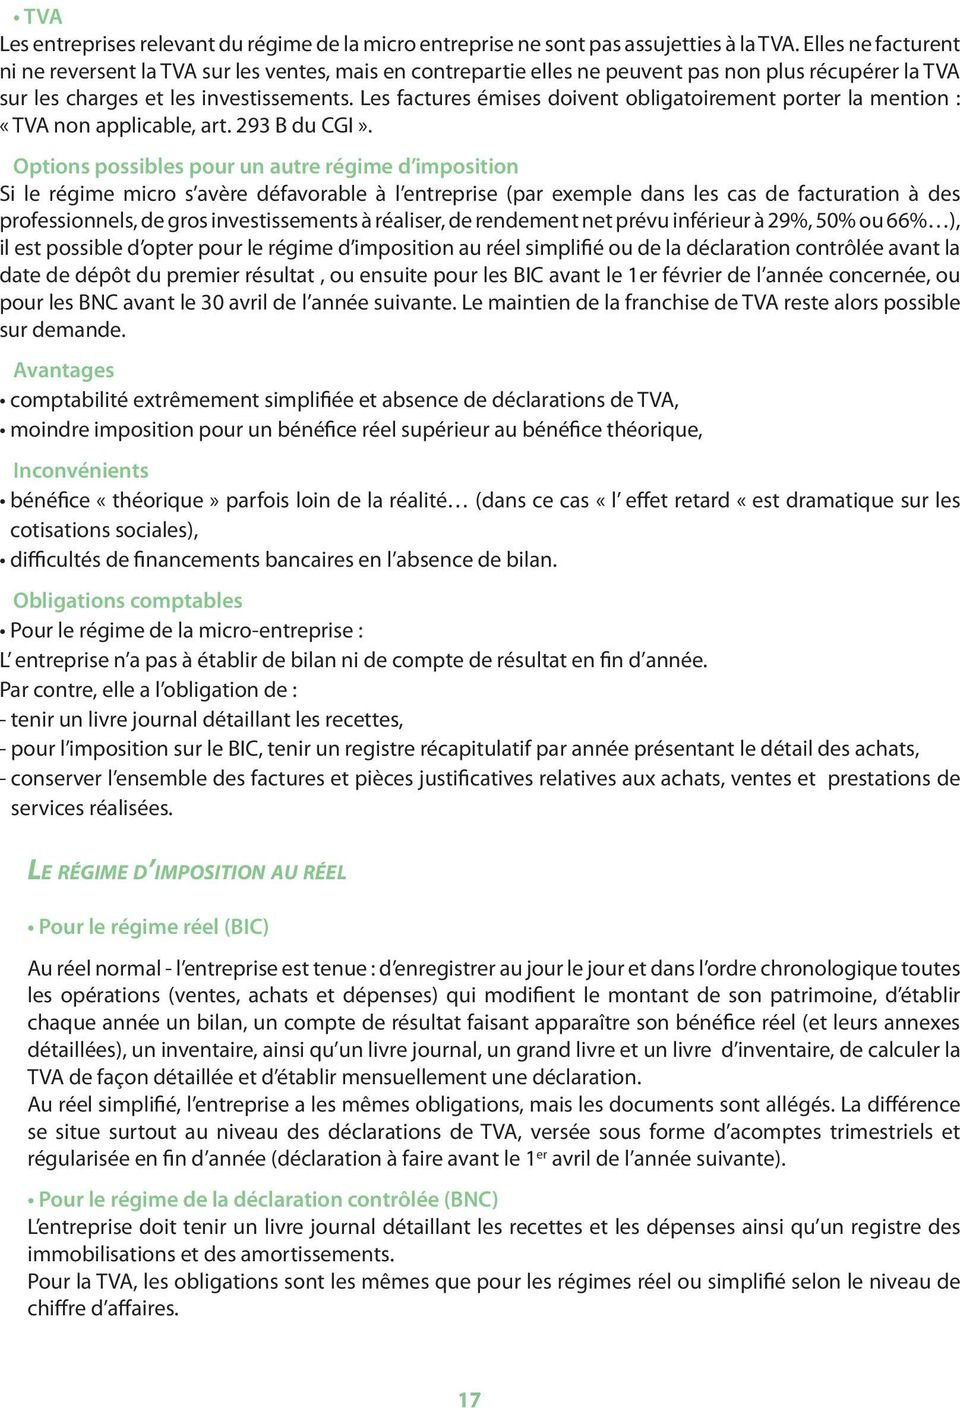 Les factures émises doivent obligatoirement porter la mention : «TVA non applicable, art. 293 B du CGI».